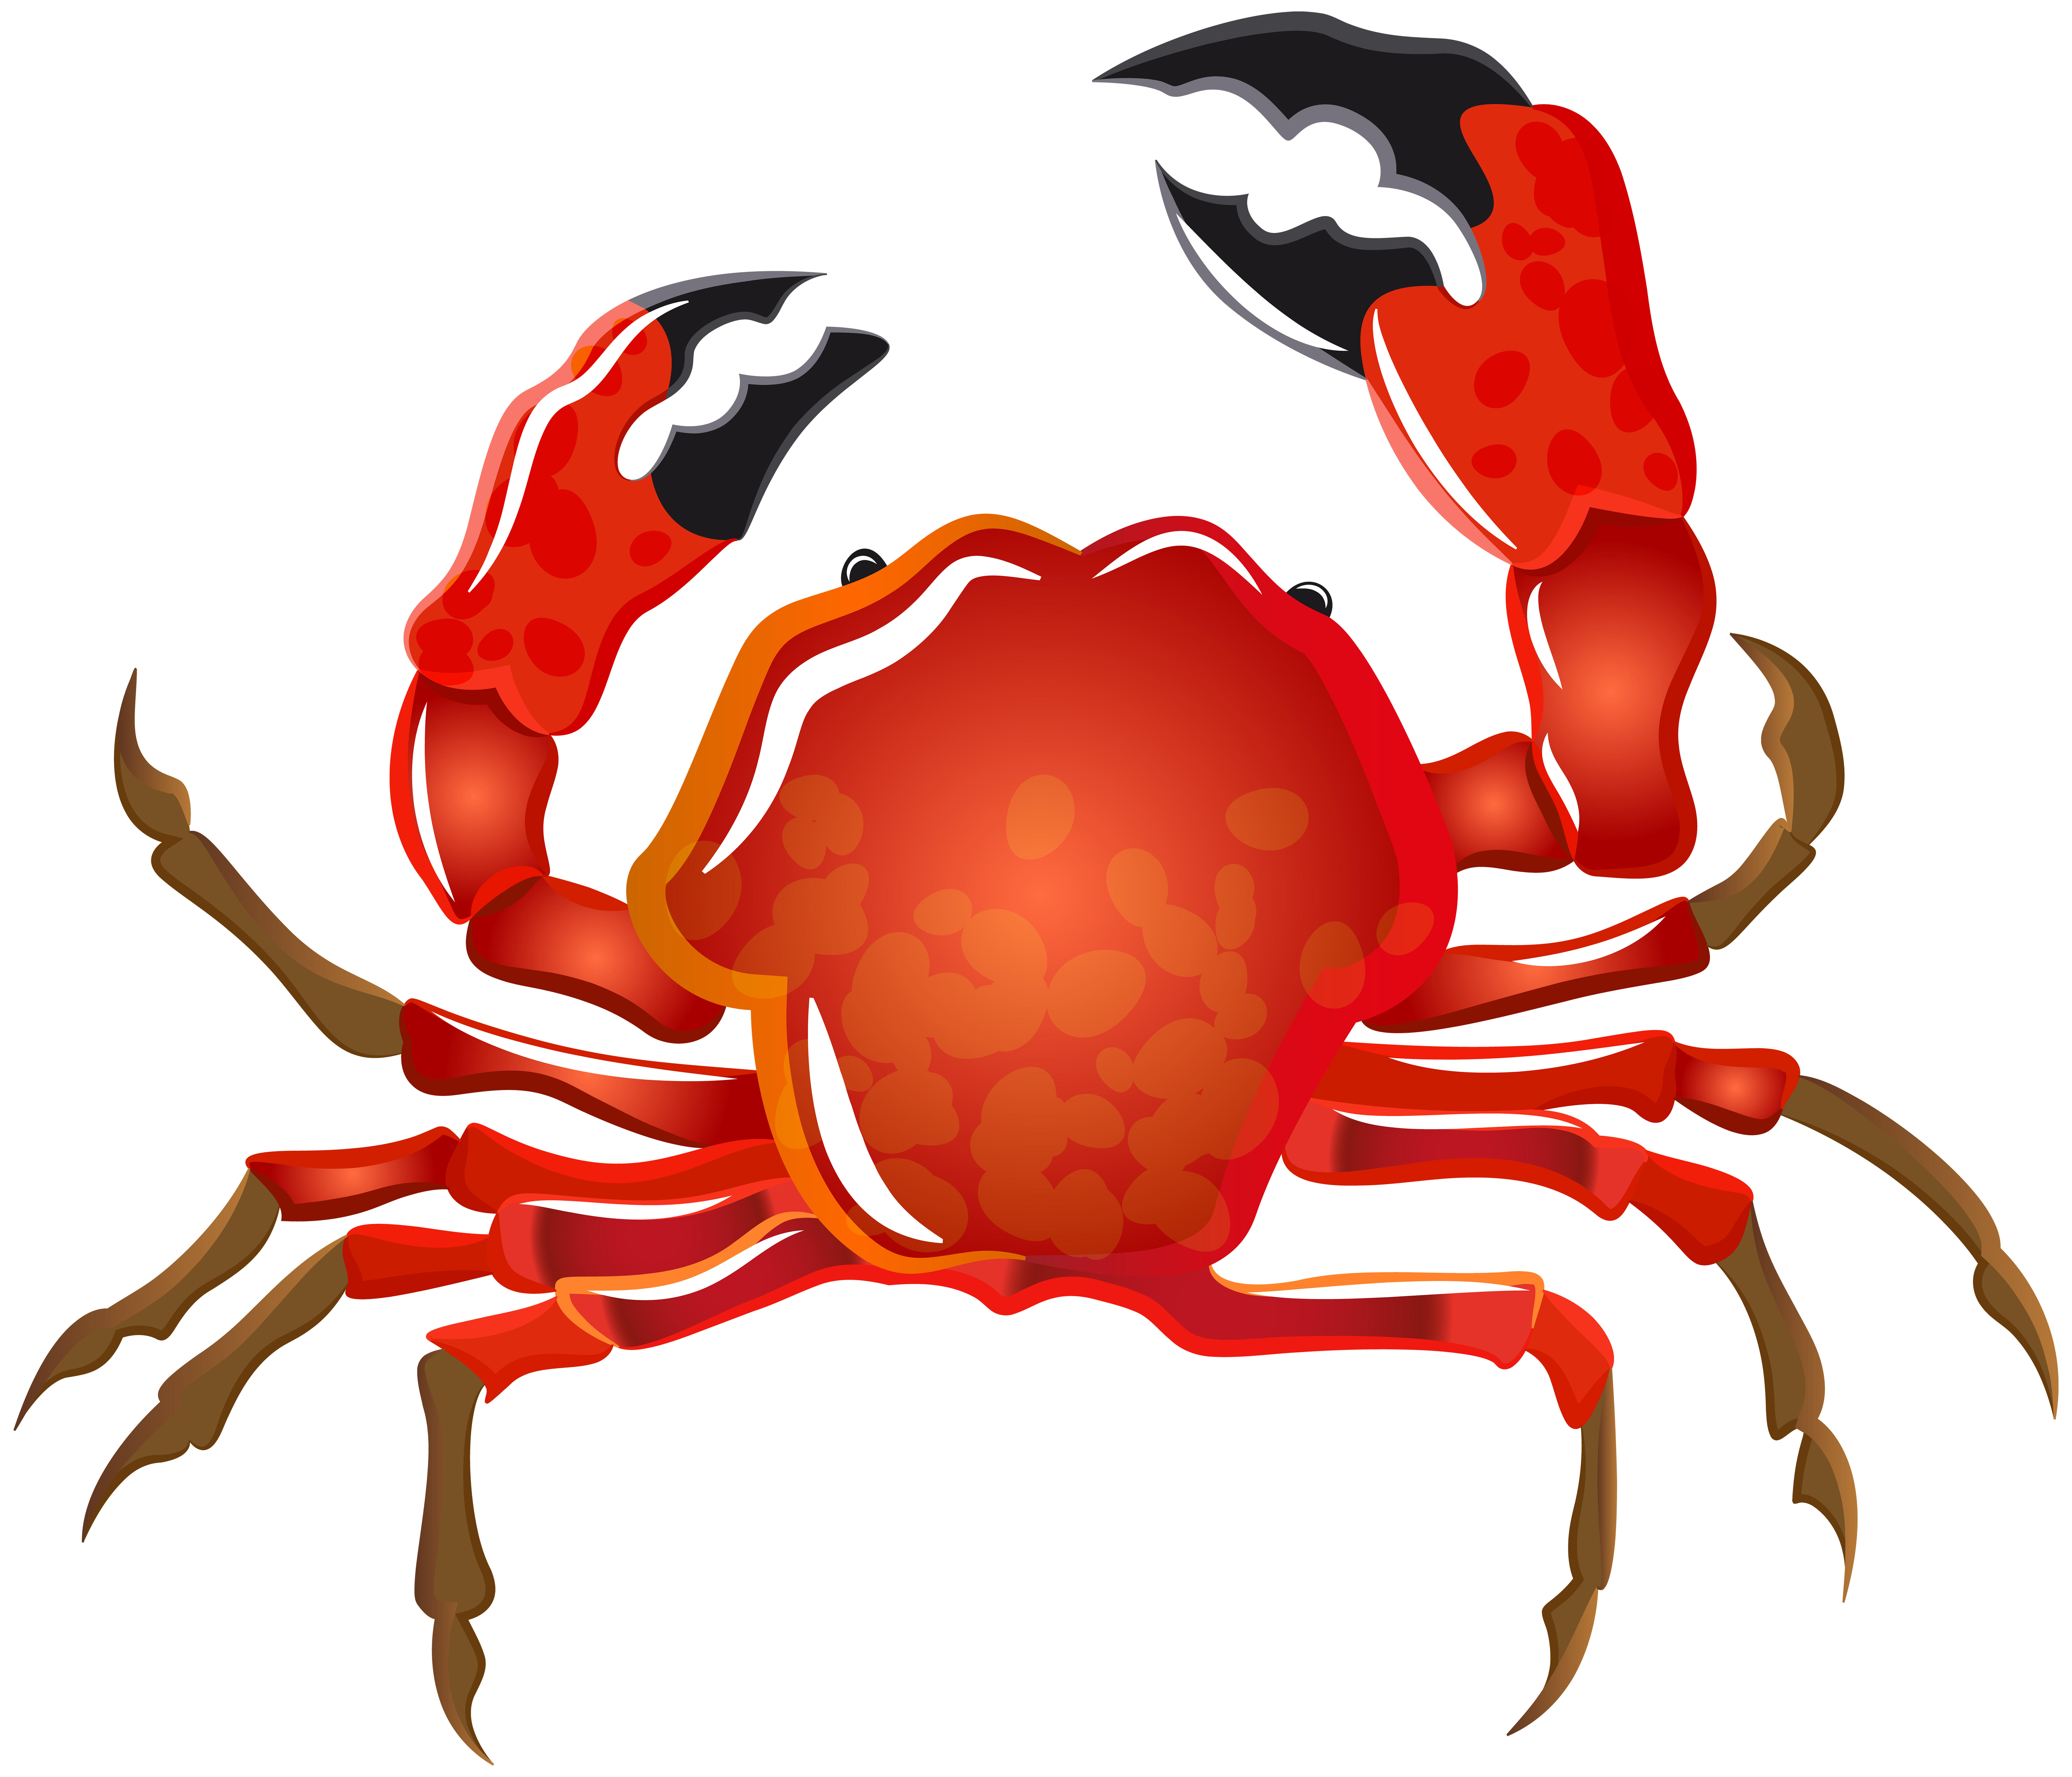 Transparent png image gallery. Crab clipart crab stick